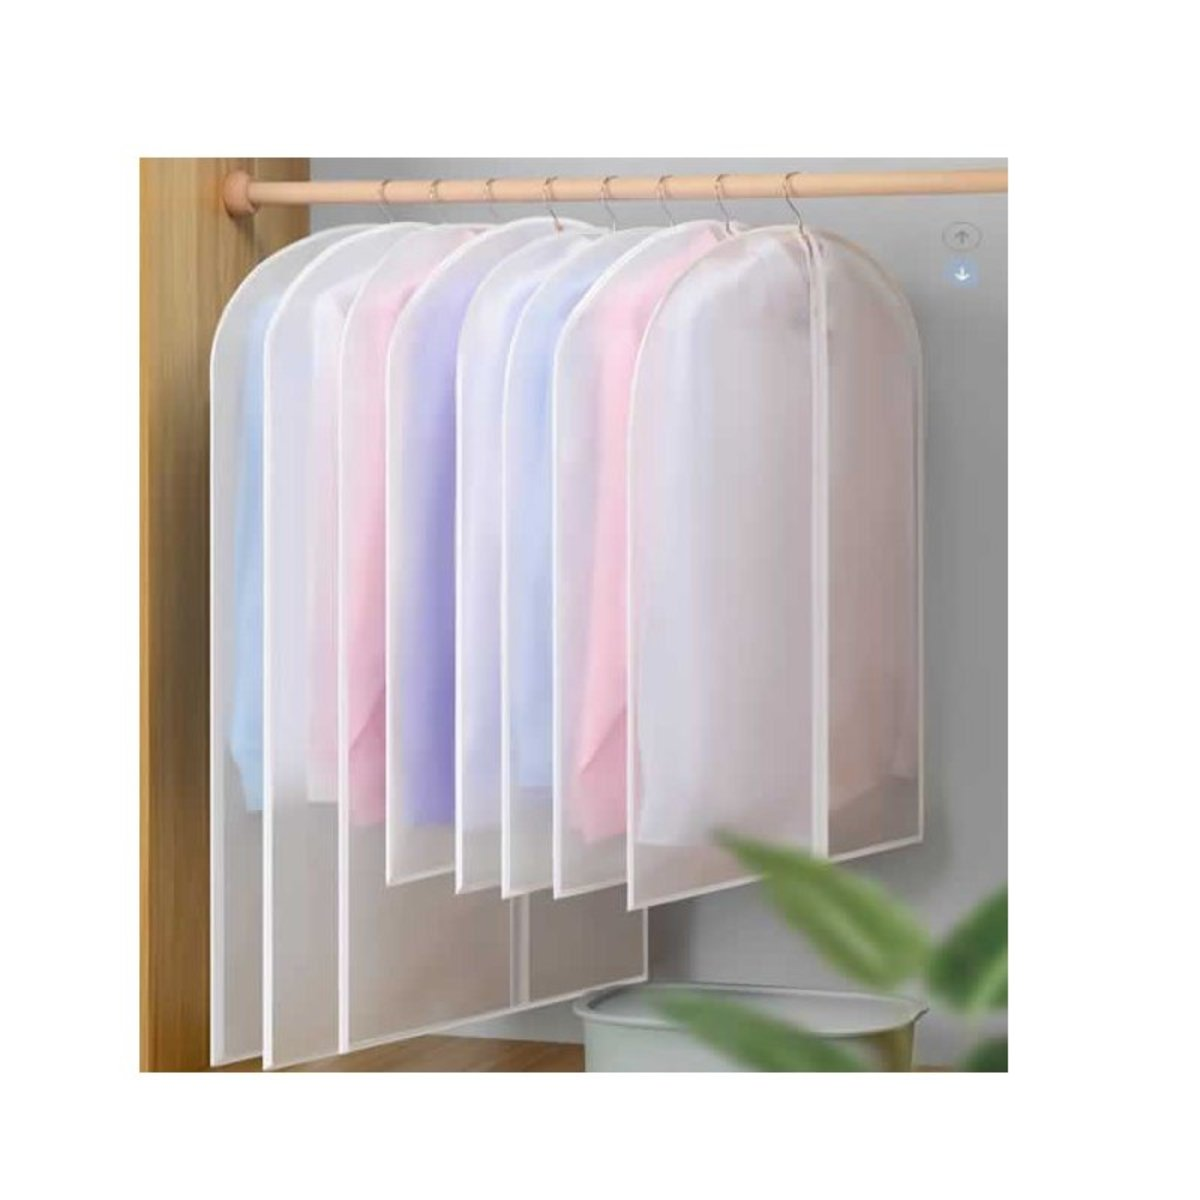 Translucent dustproof clothing bag (60cmX120cm)-10 pieces